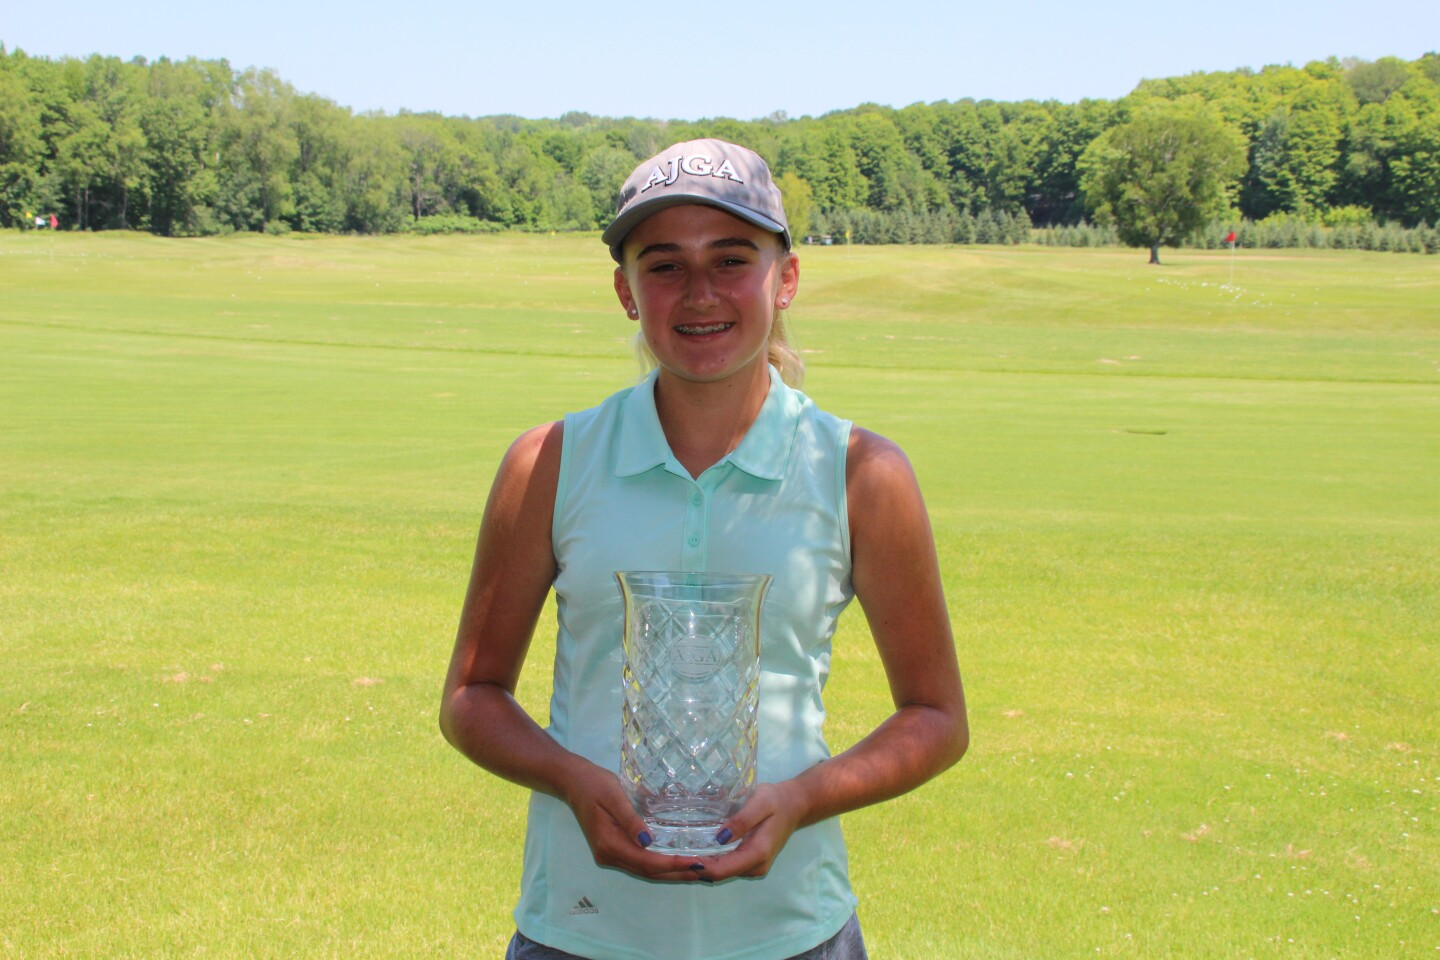 Gianna Clemente with AJGA hat -2020-CocaCola Junior Championship at Boyne Highlands (2).JPG